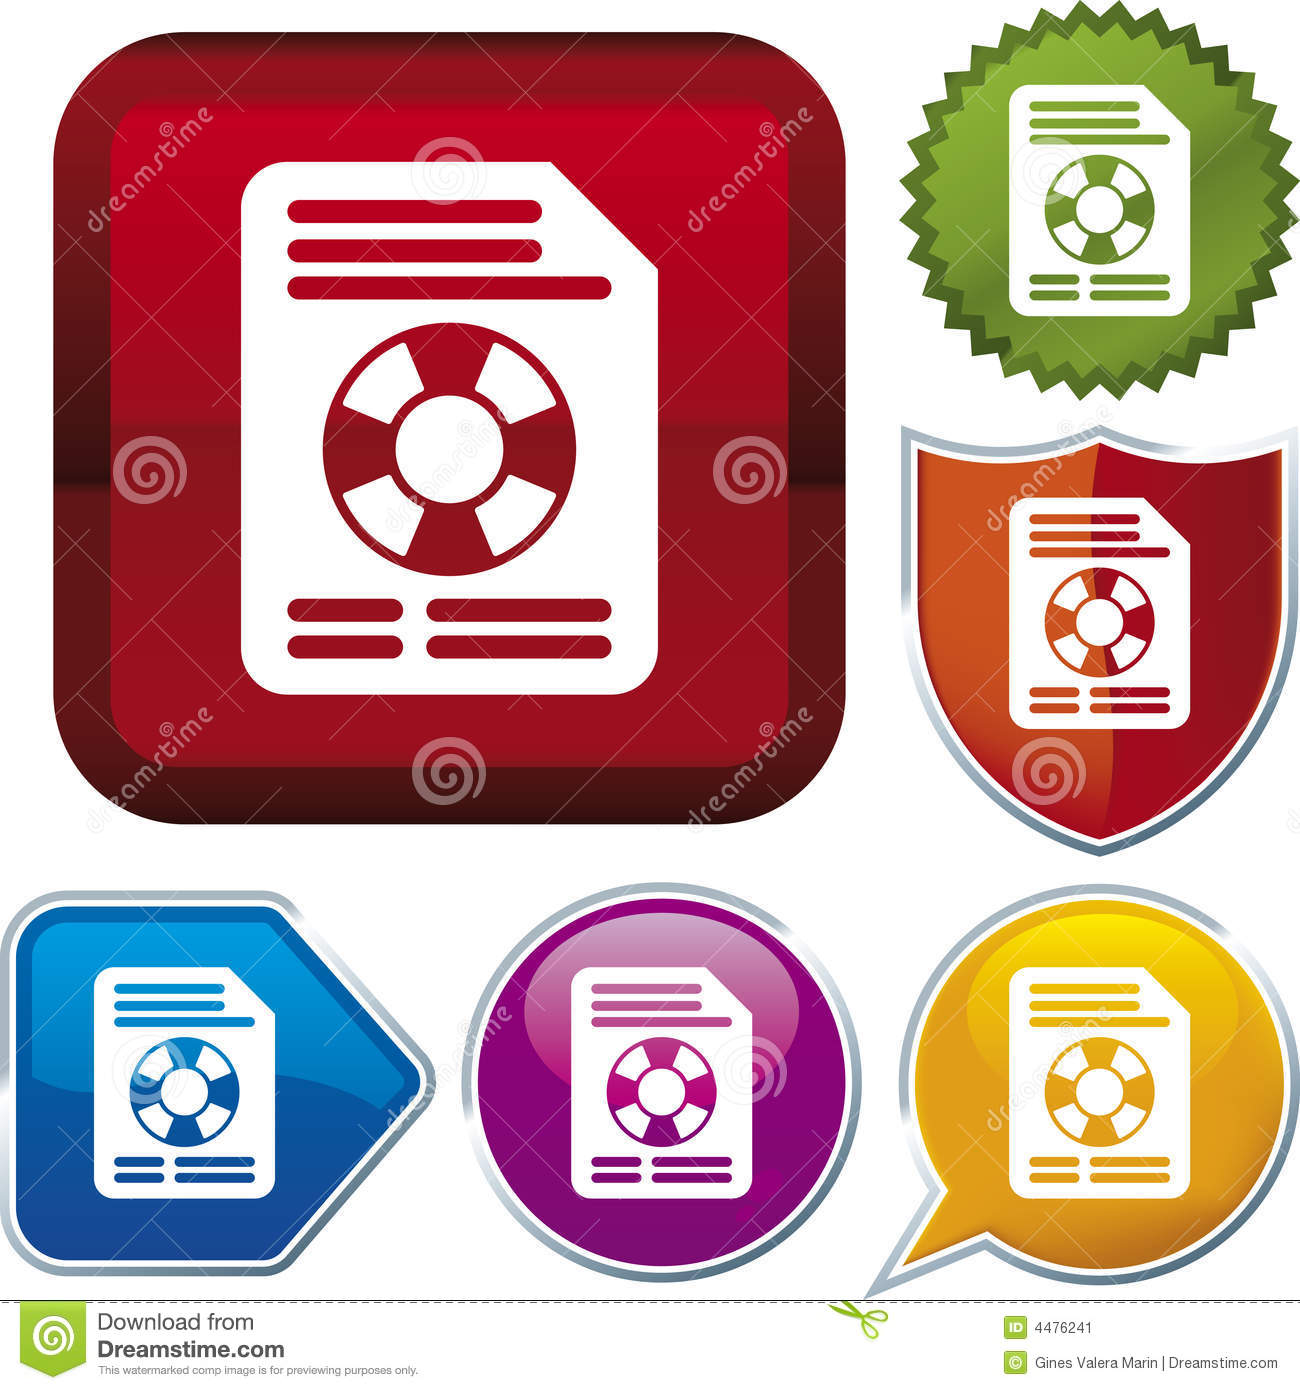 Bank Of Marin Stock Quote: Icon Series: File Recovery Stock Image